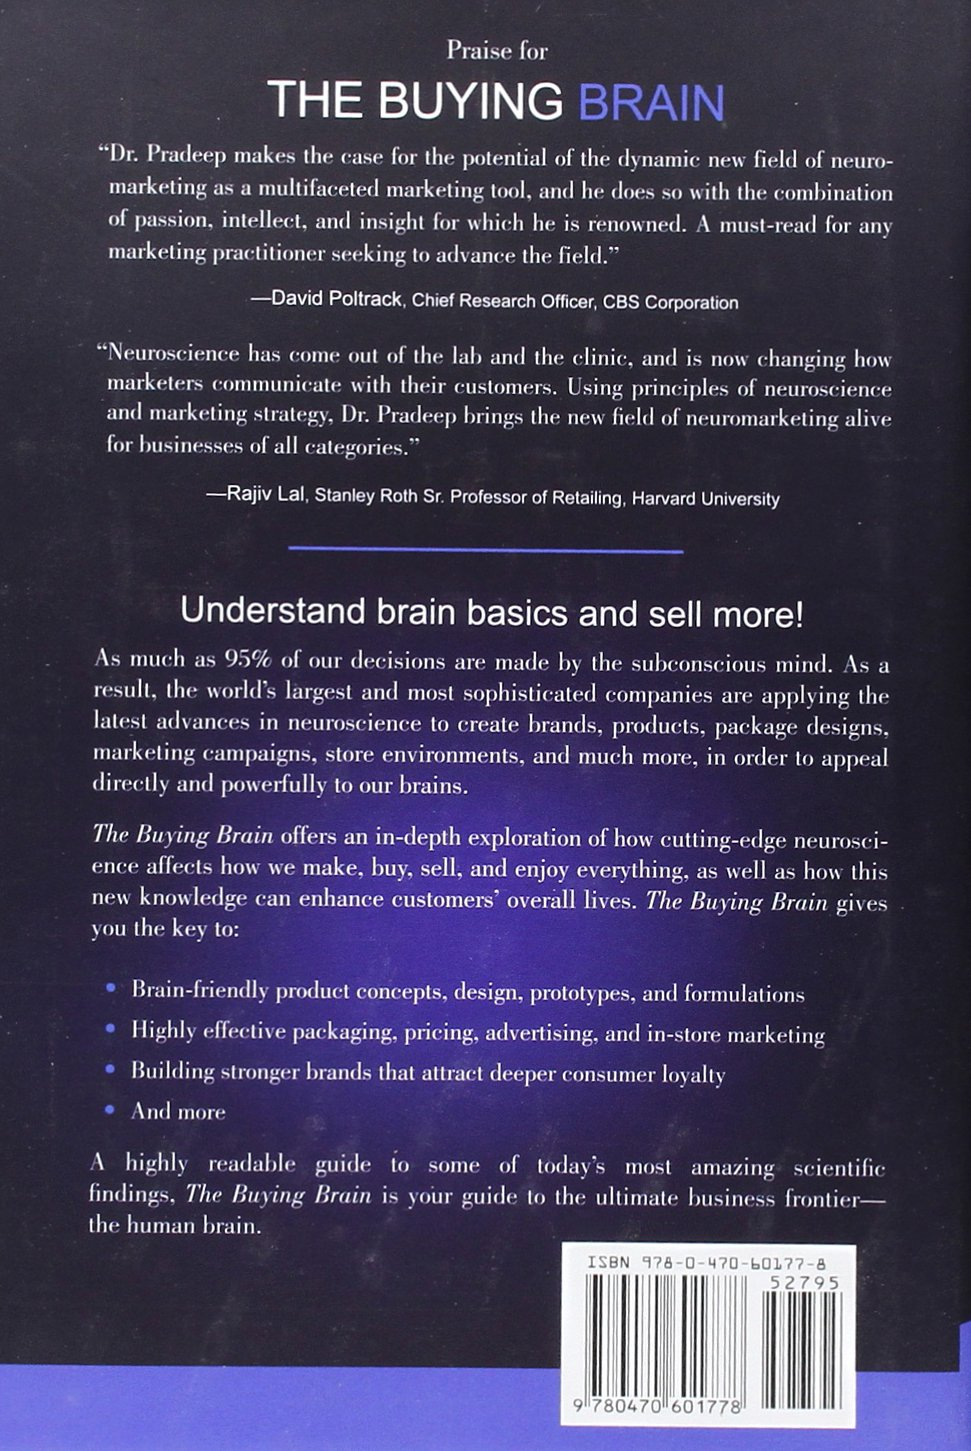 e19a276c9e8d The Buying Brain  Secrets for Selling to the Subconscious Mind   Amazon.co.uk  A. K. Pradeep  9780470601778  Books